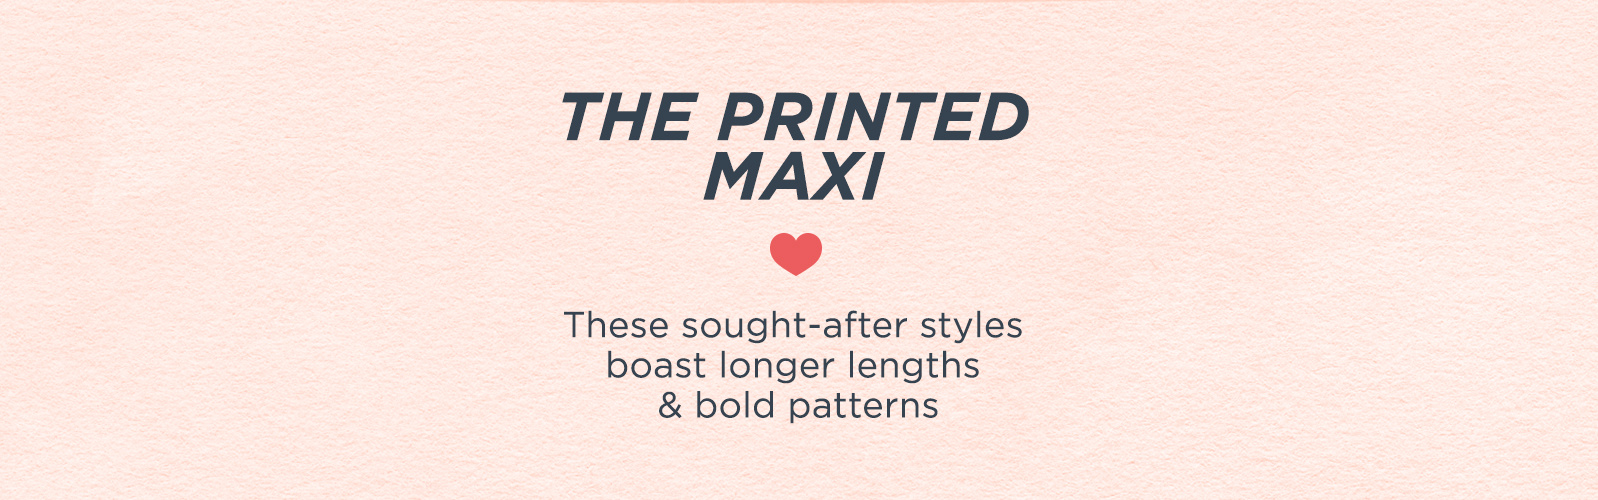 The Printed Maxi  These sought-after styles boast longer lengths & bold patterns